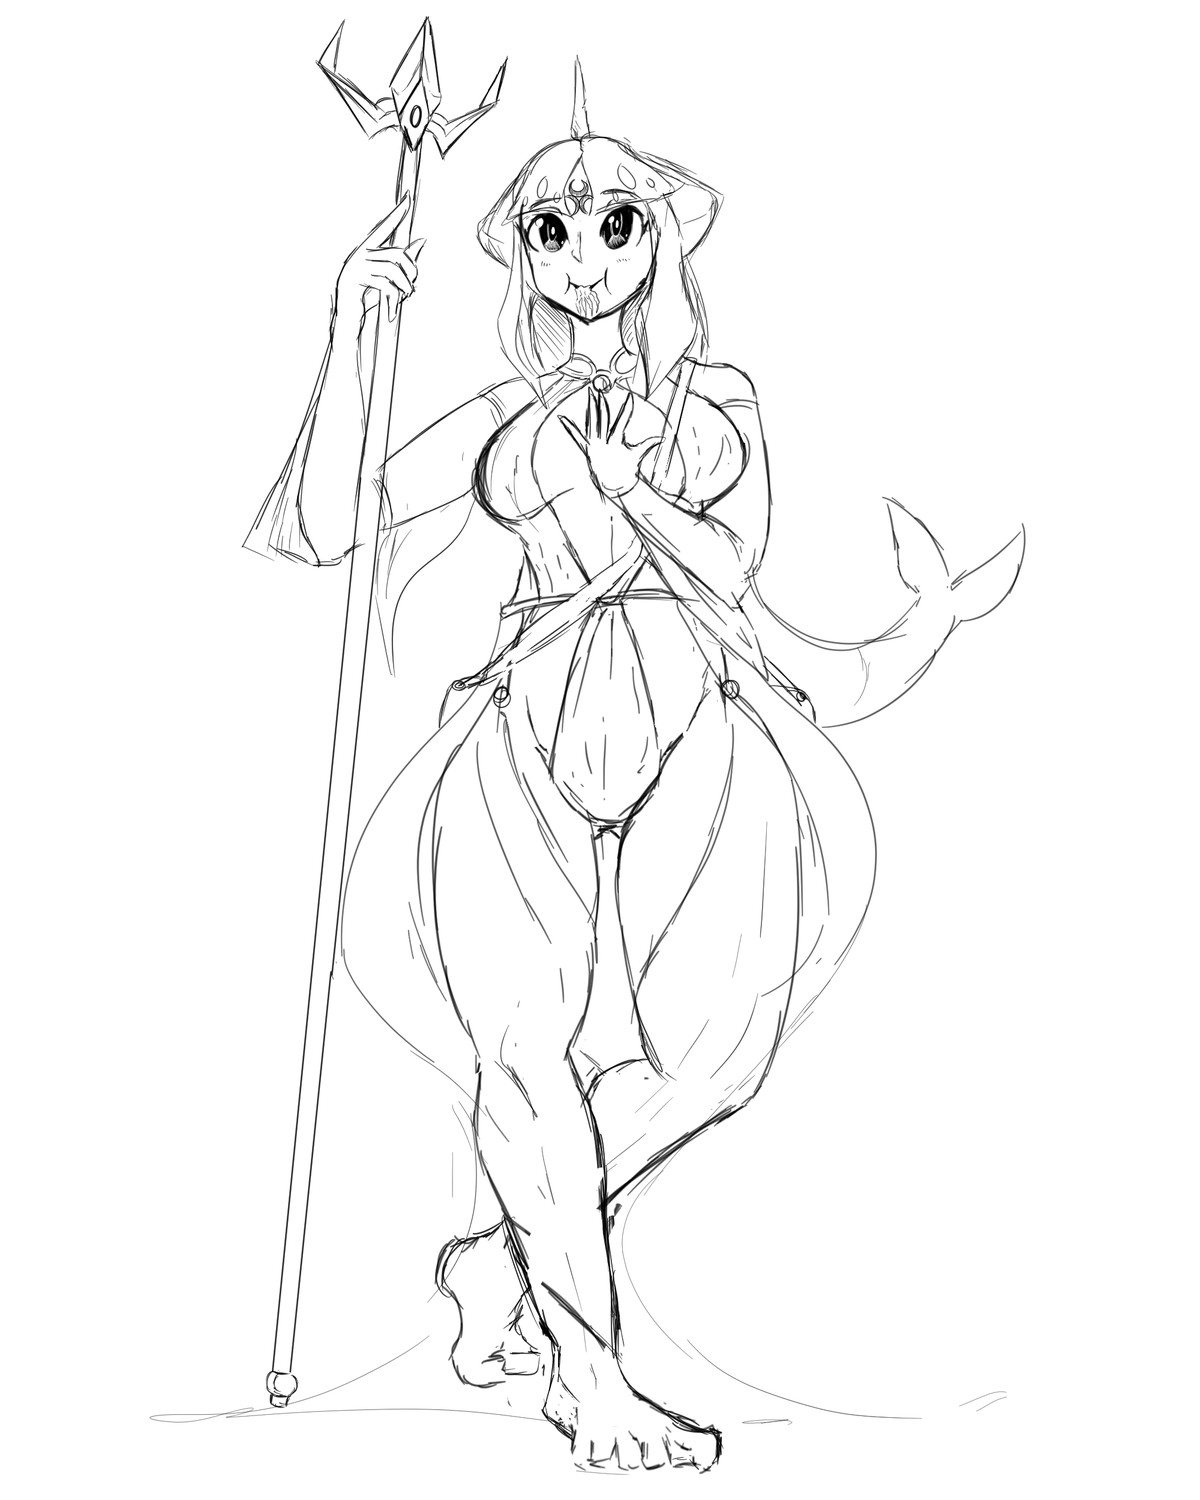 shark girl for dnd. based on zora from botw obviously join list: GBArt (261 subs)Mention History.. She's adorable Also the artist in me cannot unsee how much longer her left leg is compared to her right